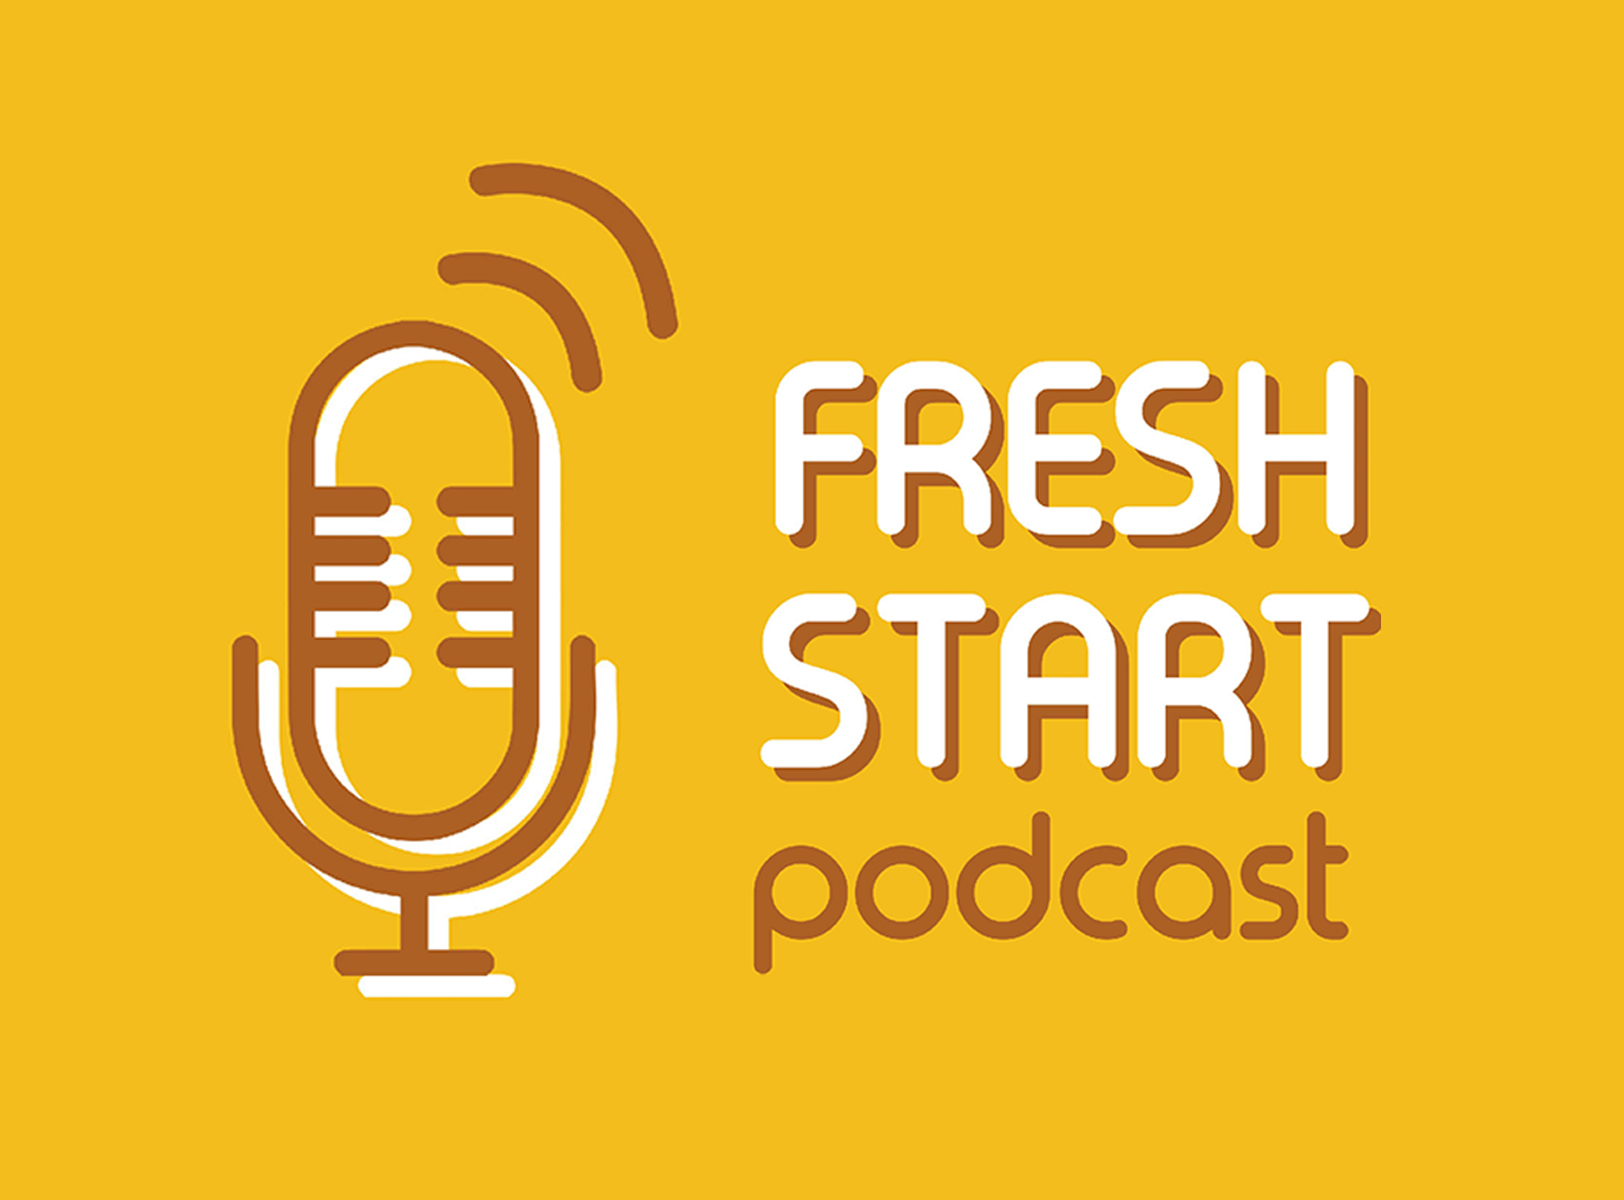 Fresh Start: Podcast News (5/13/2019 Mon.)